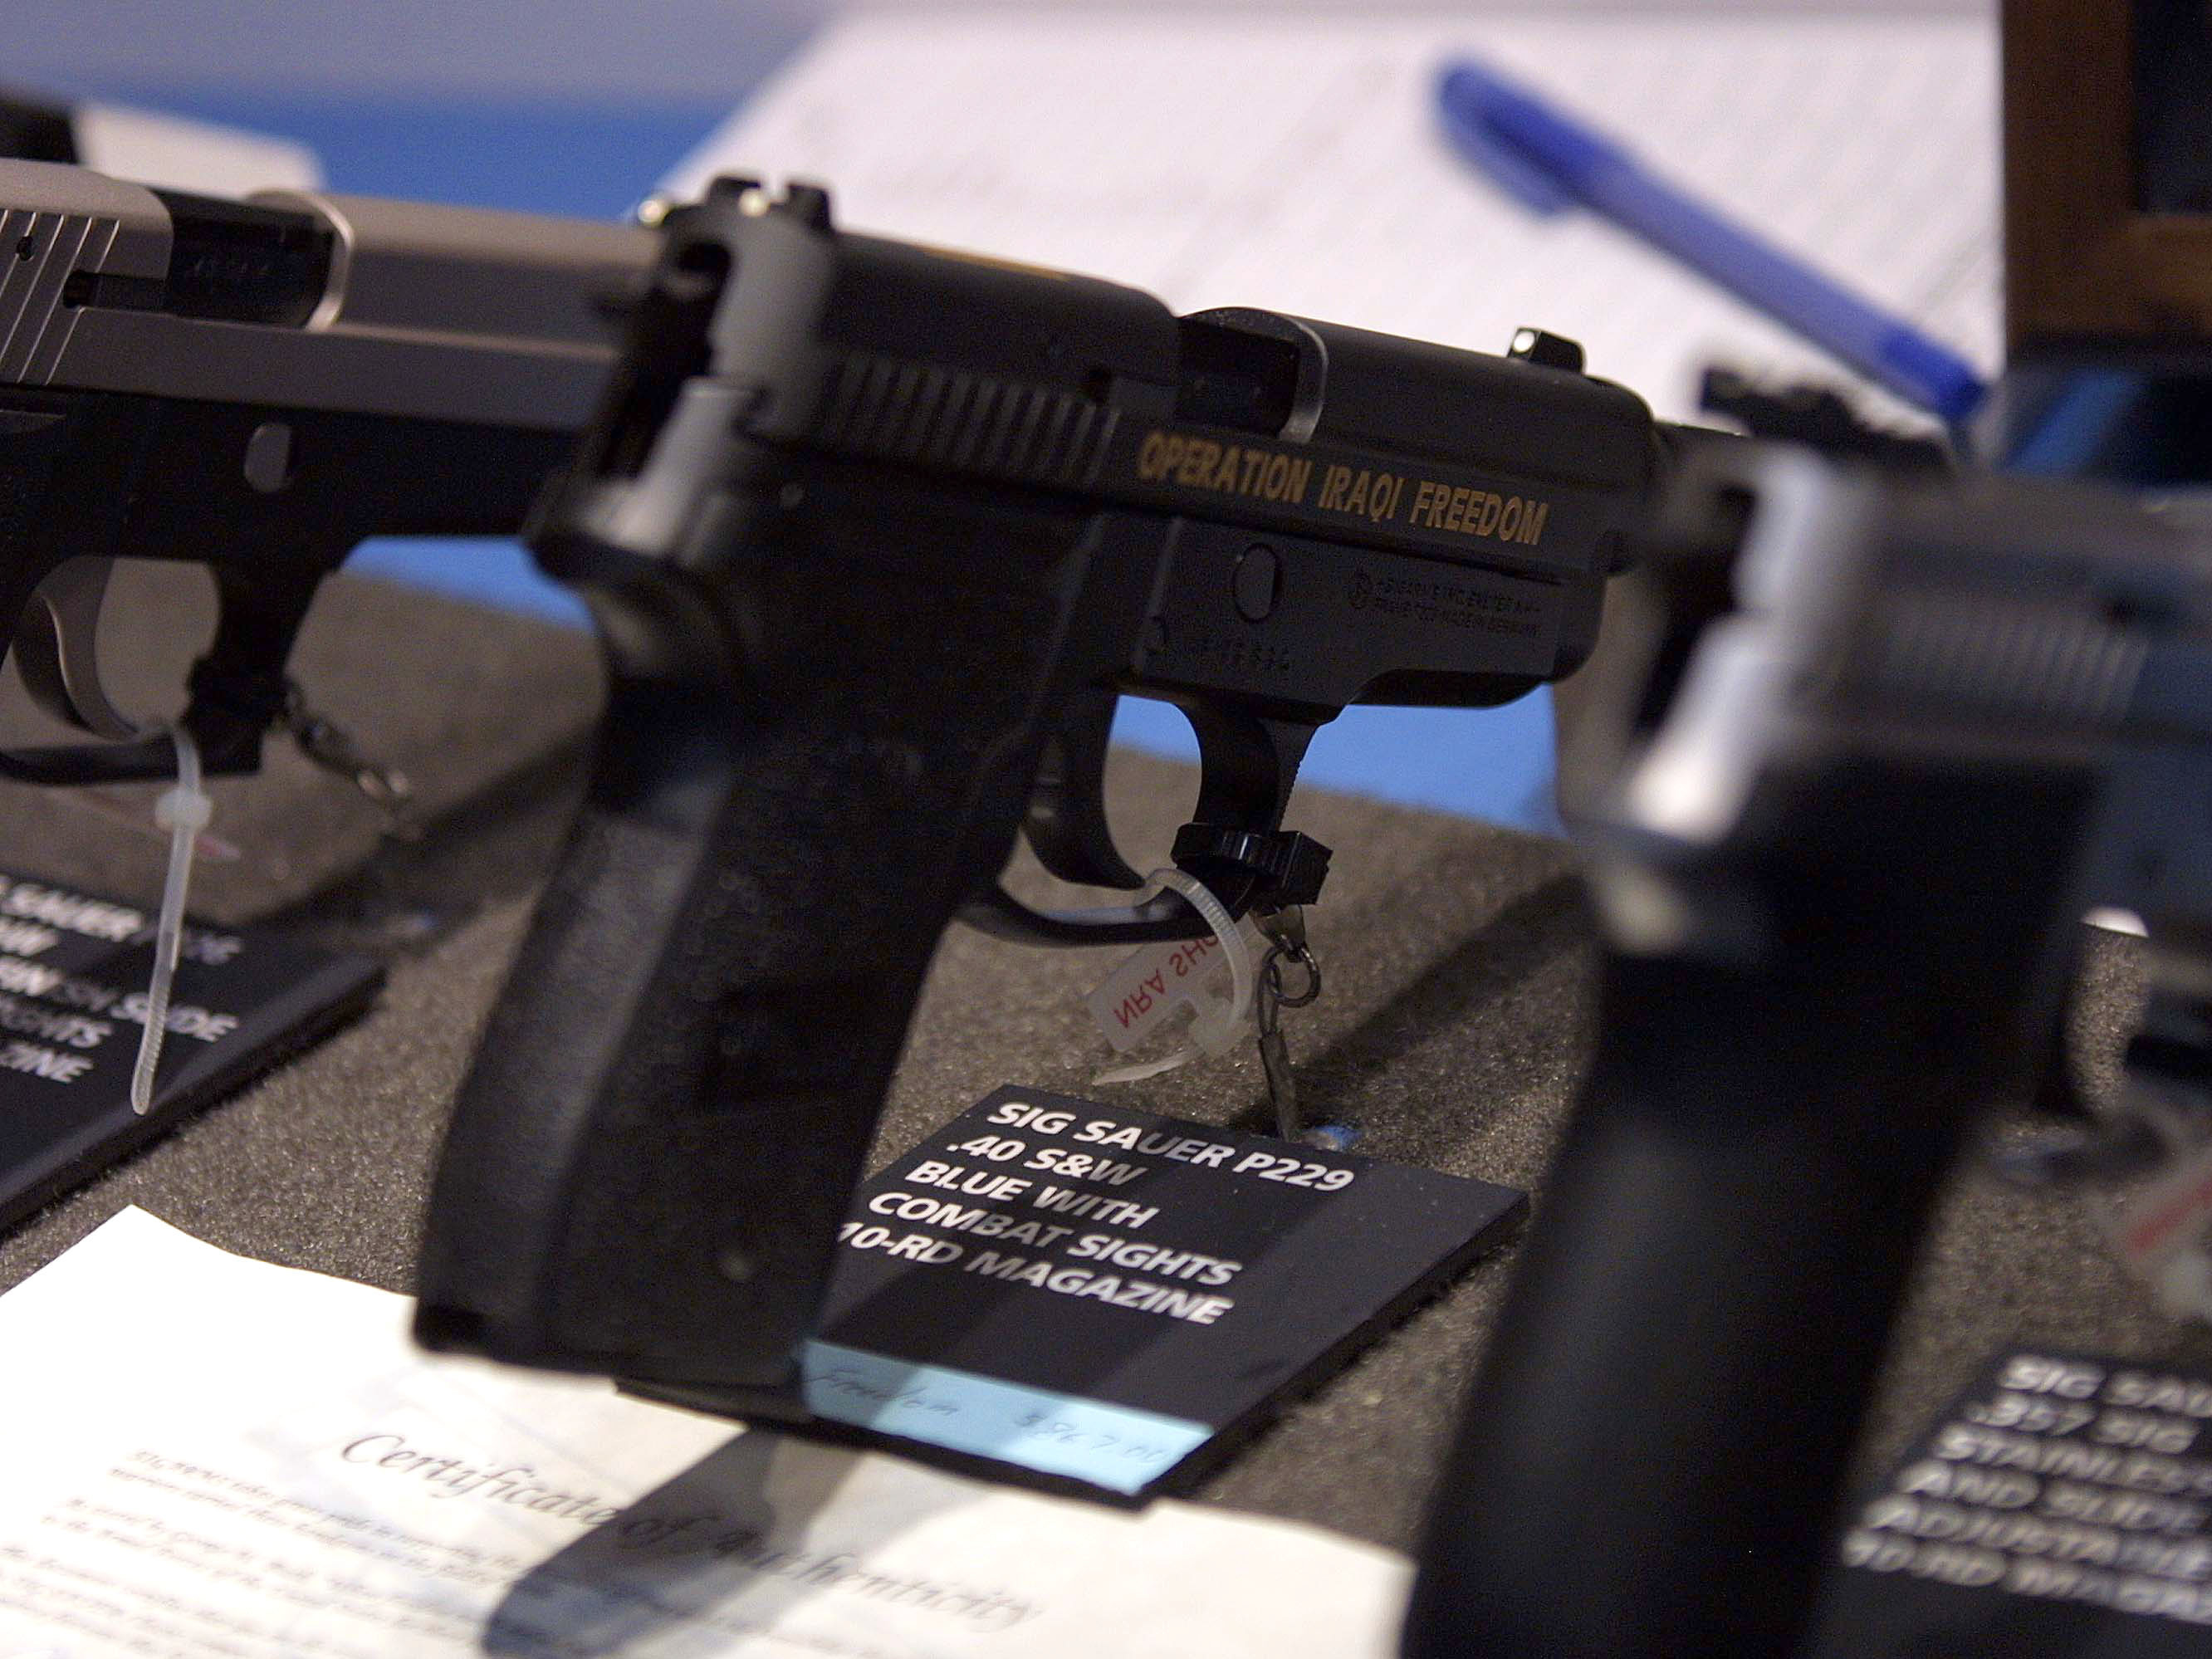 Court Strikes Down Florida Law Barring Doctors From Discussing Guns With Patients